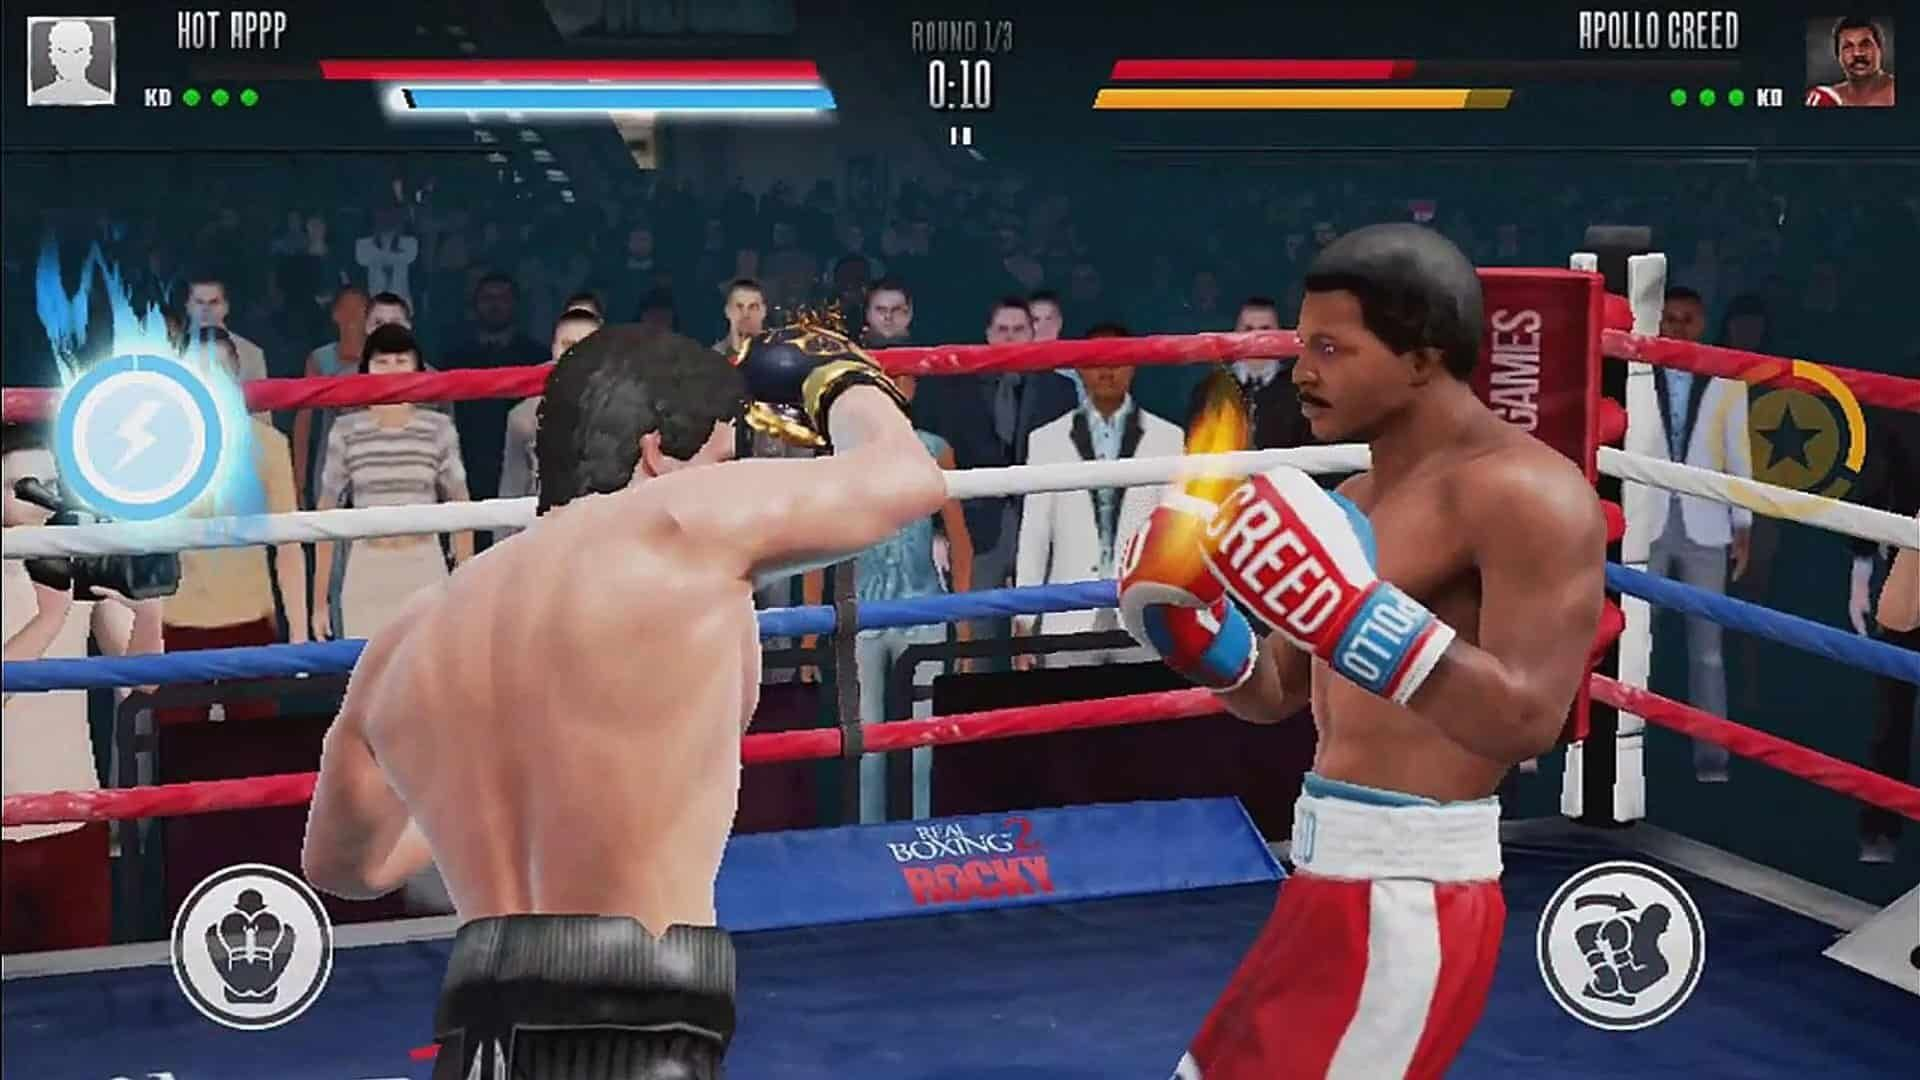 Top 10 Boxing Games For Ios Https Www Noobs2pro Com P 5665 World Boxing Games Best Games